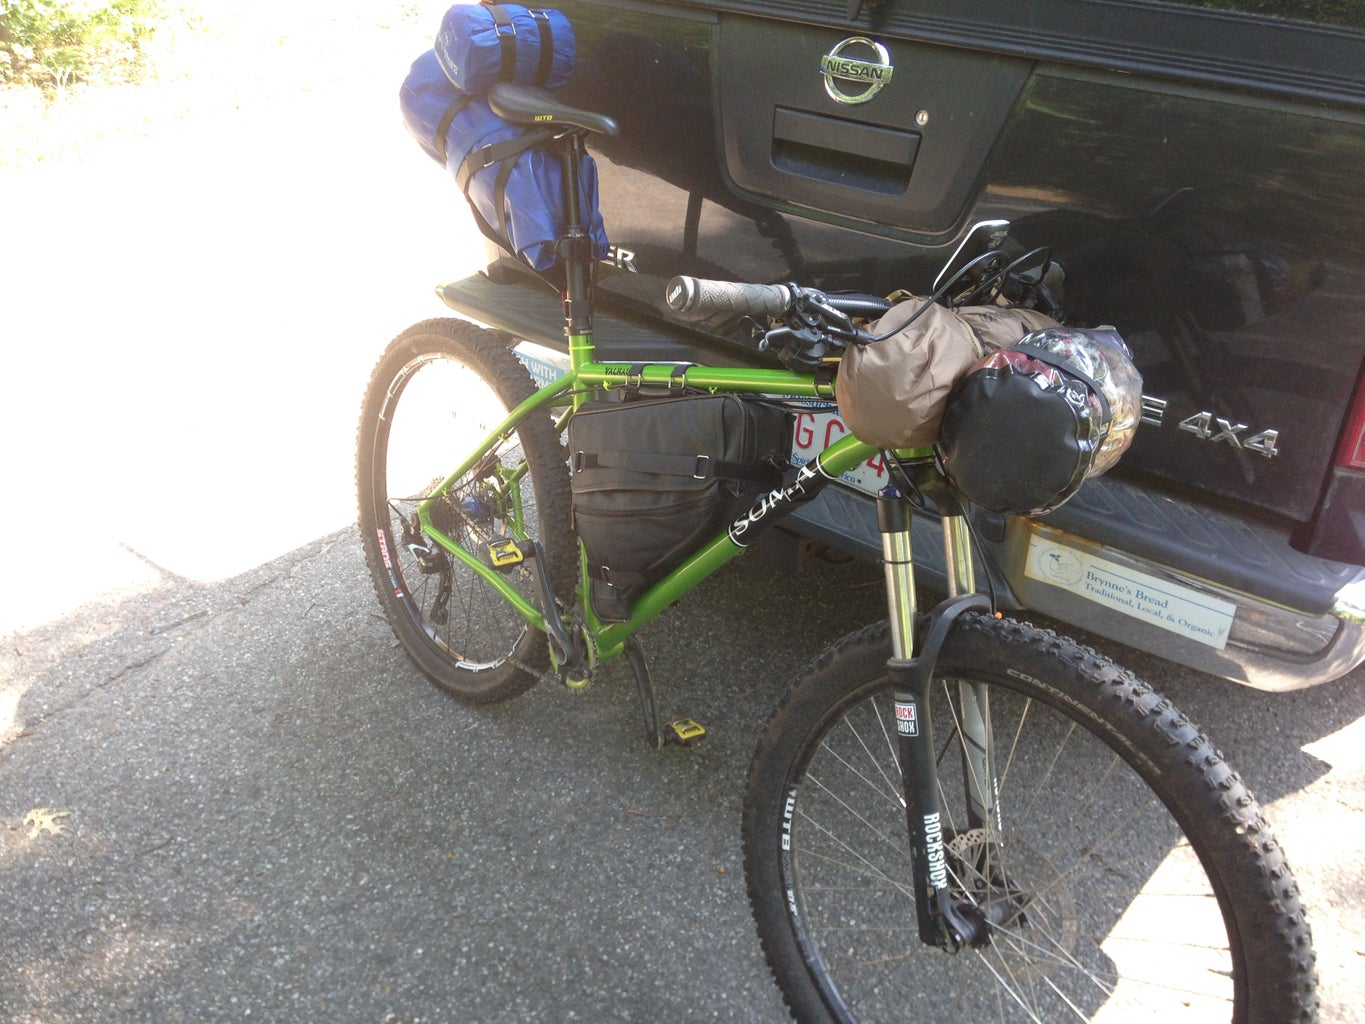 Filling the Bags and Getting the Bike Ready for the Journey